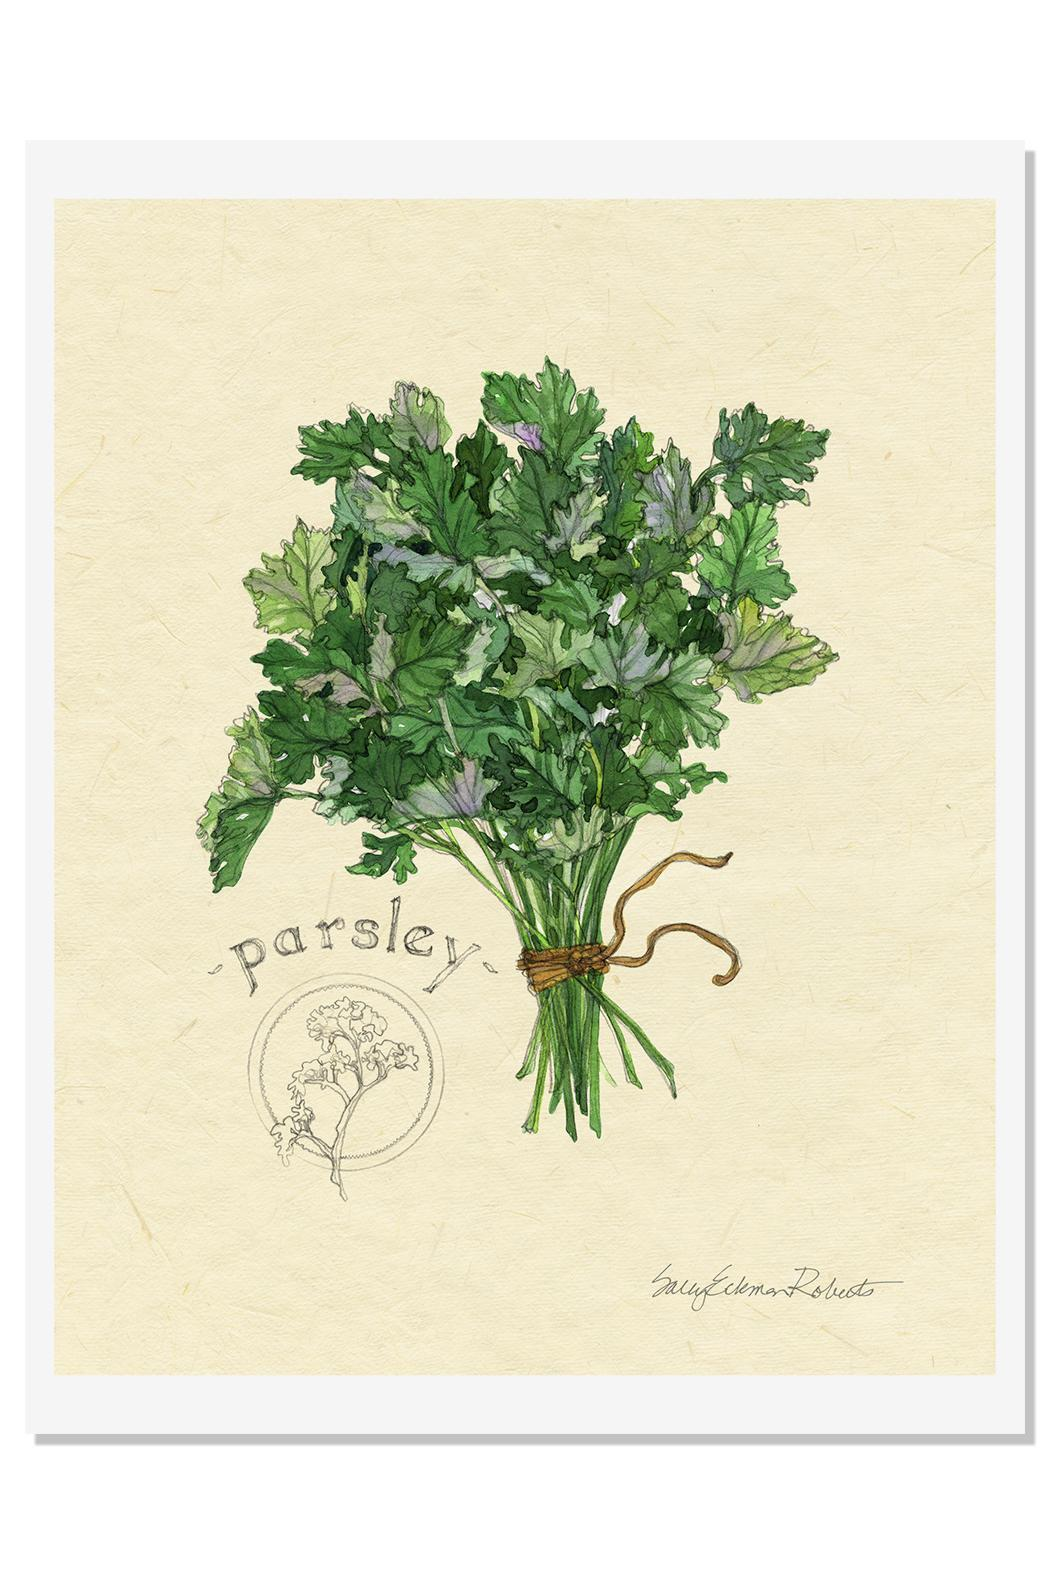 Sally Eckman Roberts Herbs Print-Parsley - Main Image